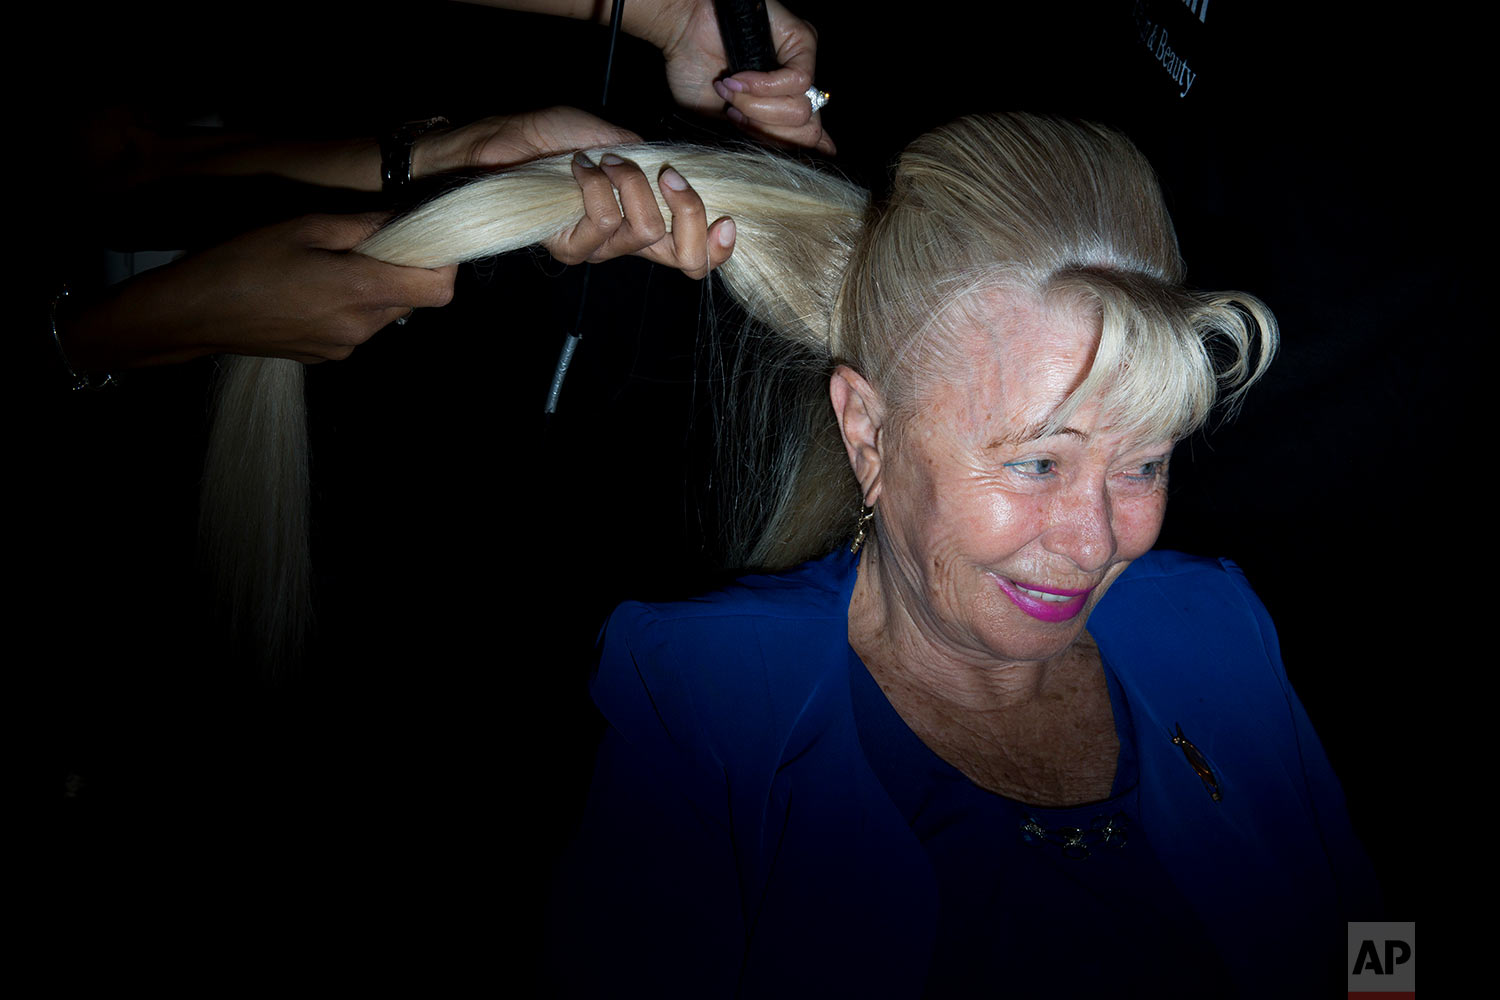 Holocaust survivor Dvorah Weinstein, 80, gets her hair done during a Beauty Heroines event in Ramat Gan, Israel, Monday, April 9, 2018. (AP Photo/Oded Balilty)